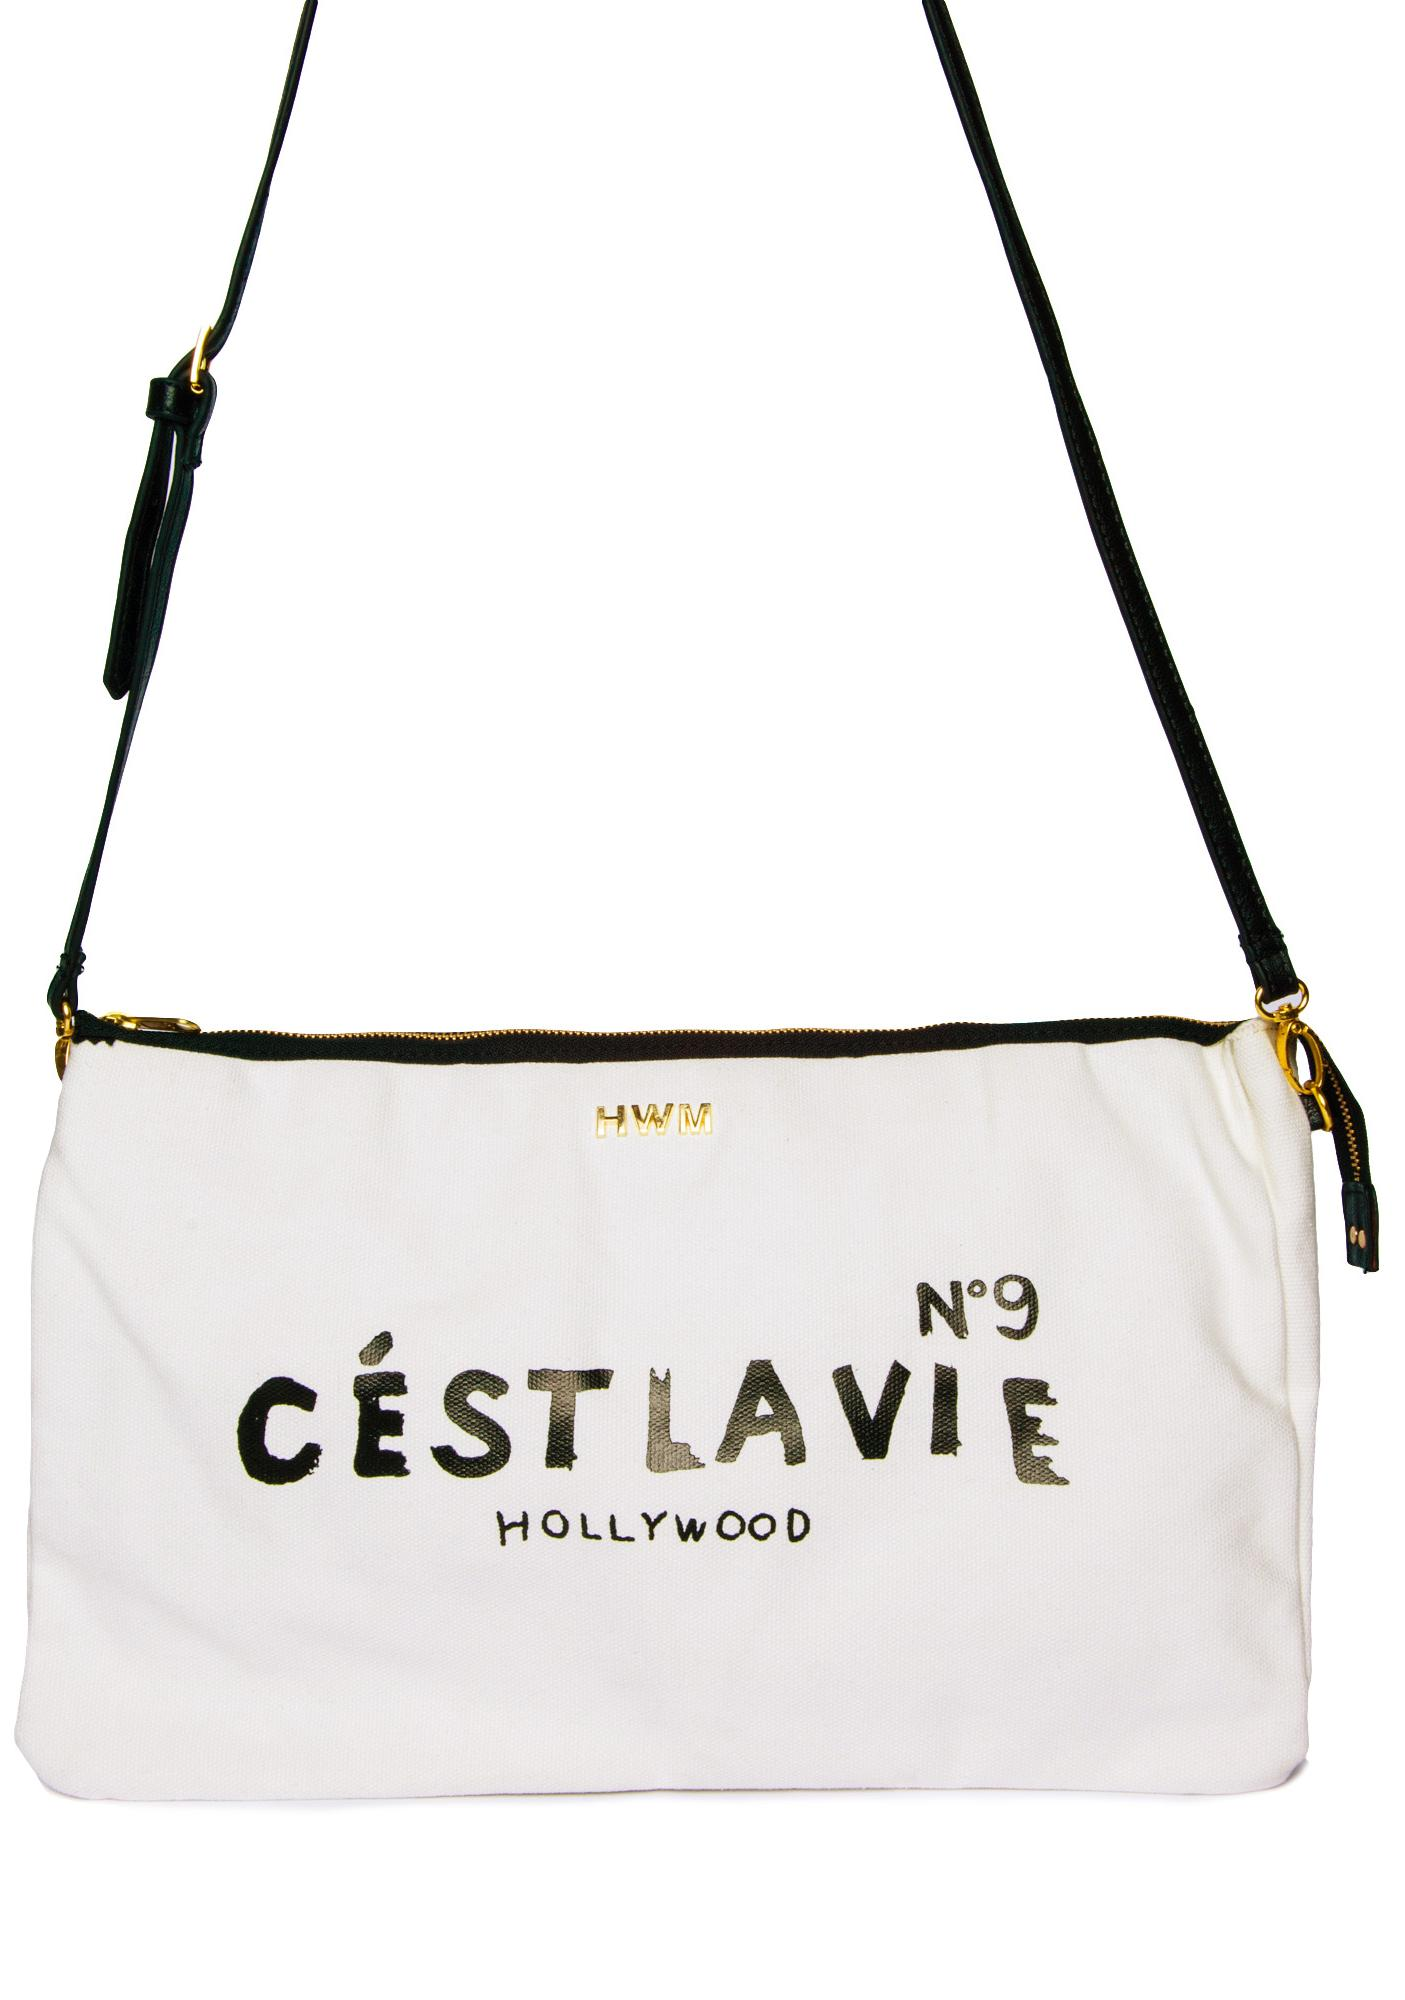 Hollywood Made UC Cest Clutch Bag